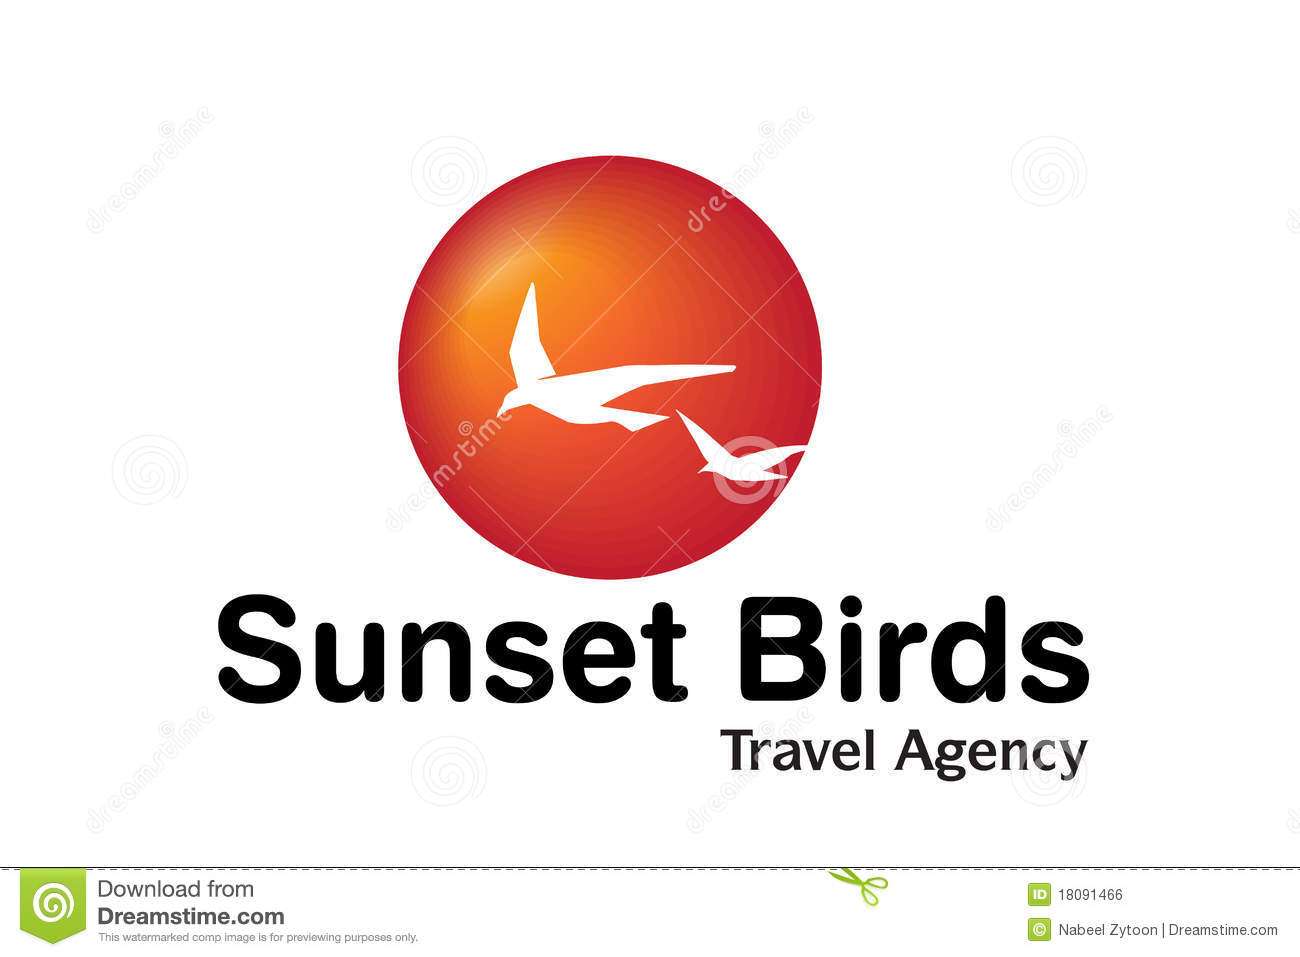 travel agency logo design royalty free stock image image